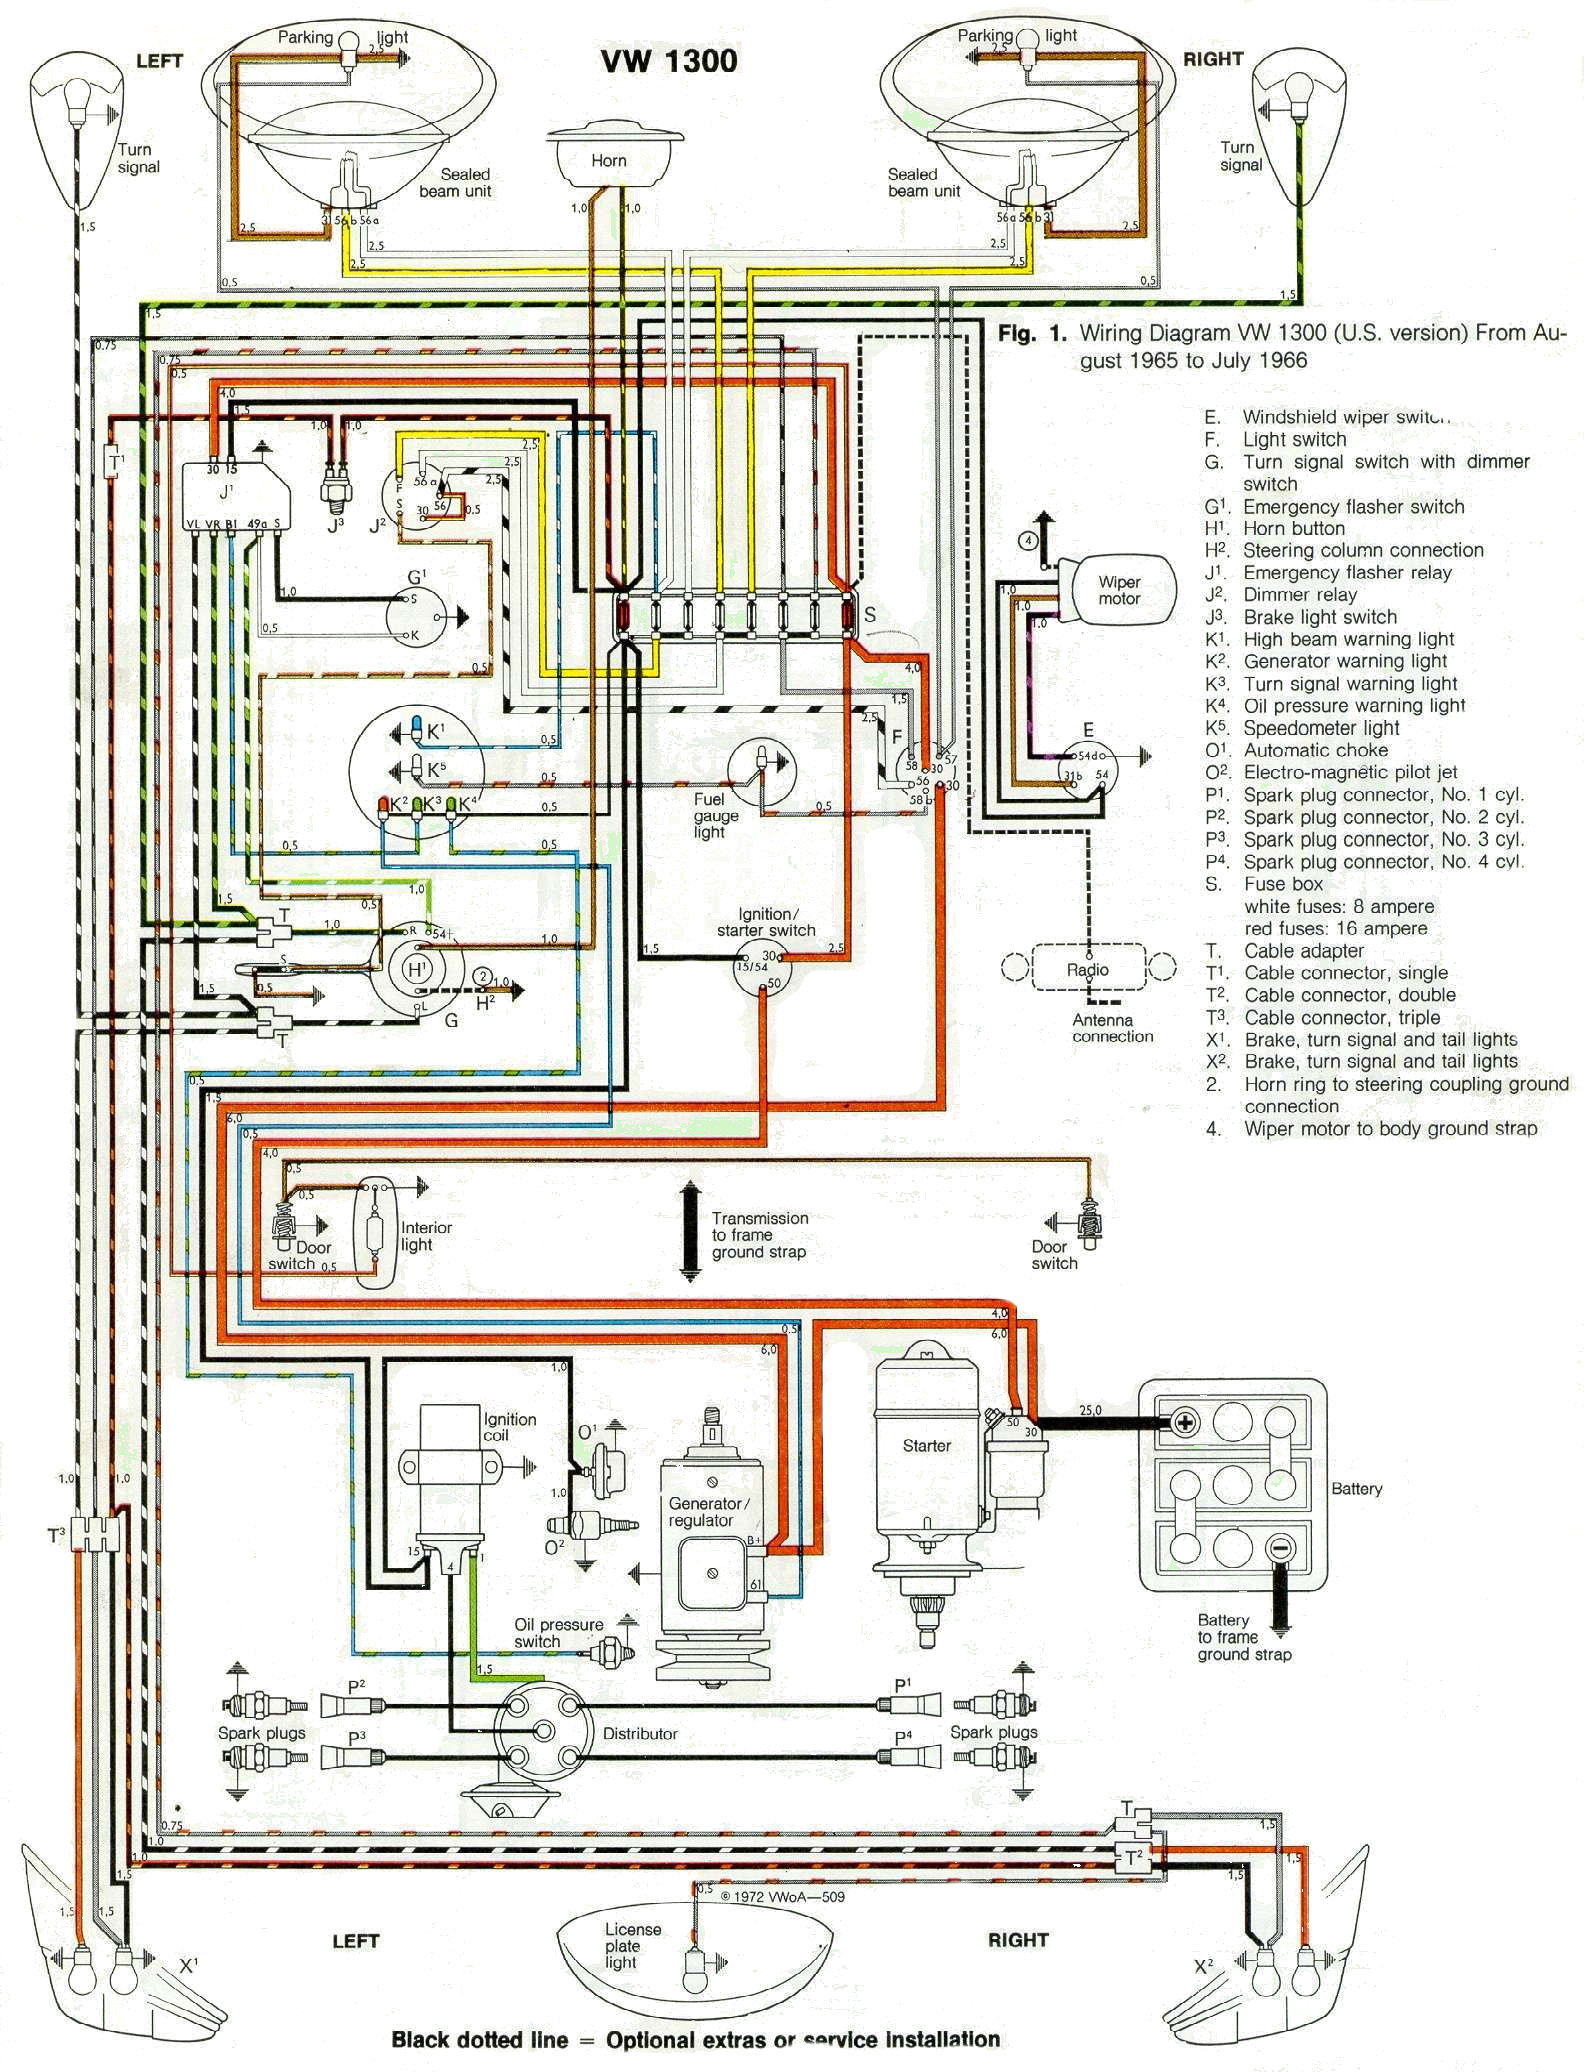 2000 vw beetle wiring diagram carbonvote mudit blog \u2022 1999 VW Beetle Fuse Diagram new beetle wiring diagram 15 8 petraoberheit de u2022 rh 15 8 petraoberheit de 2000 vw beetle wiring schematics 2000 vw beetle electrical schematic